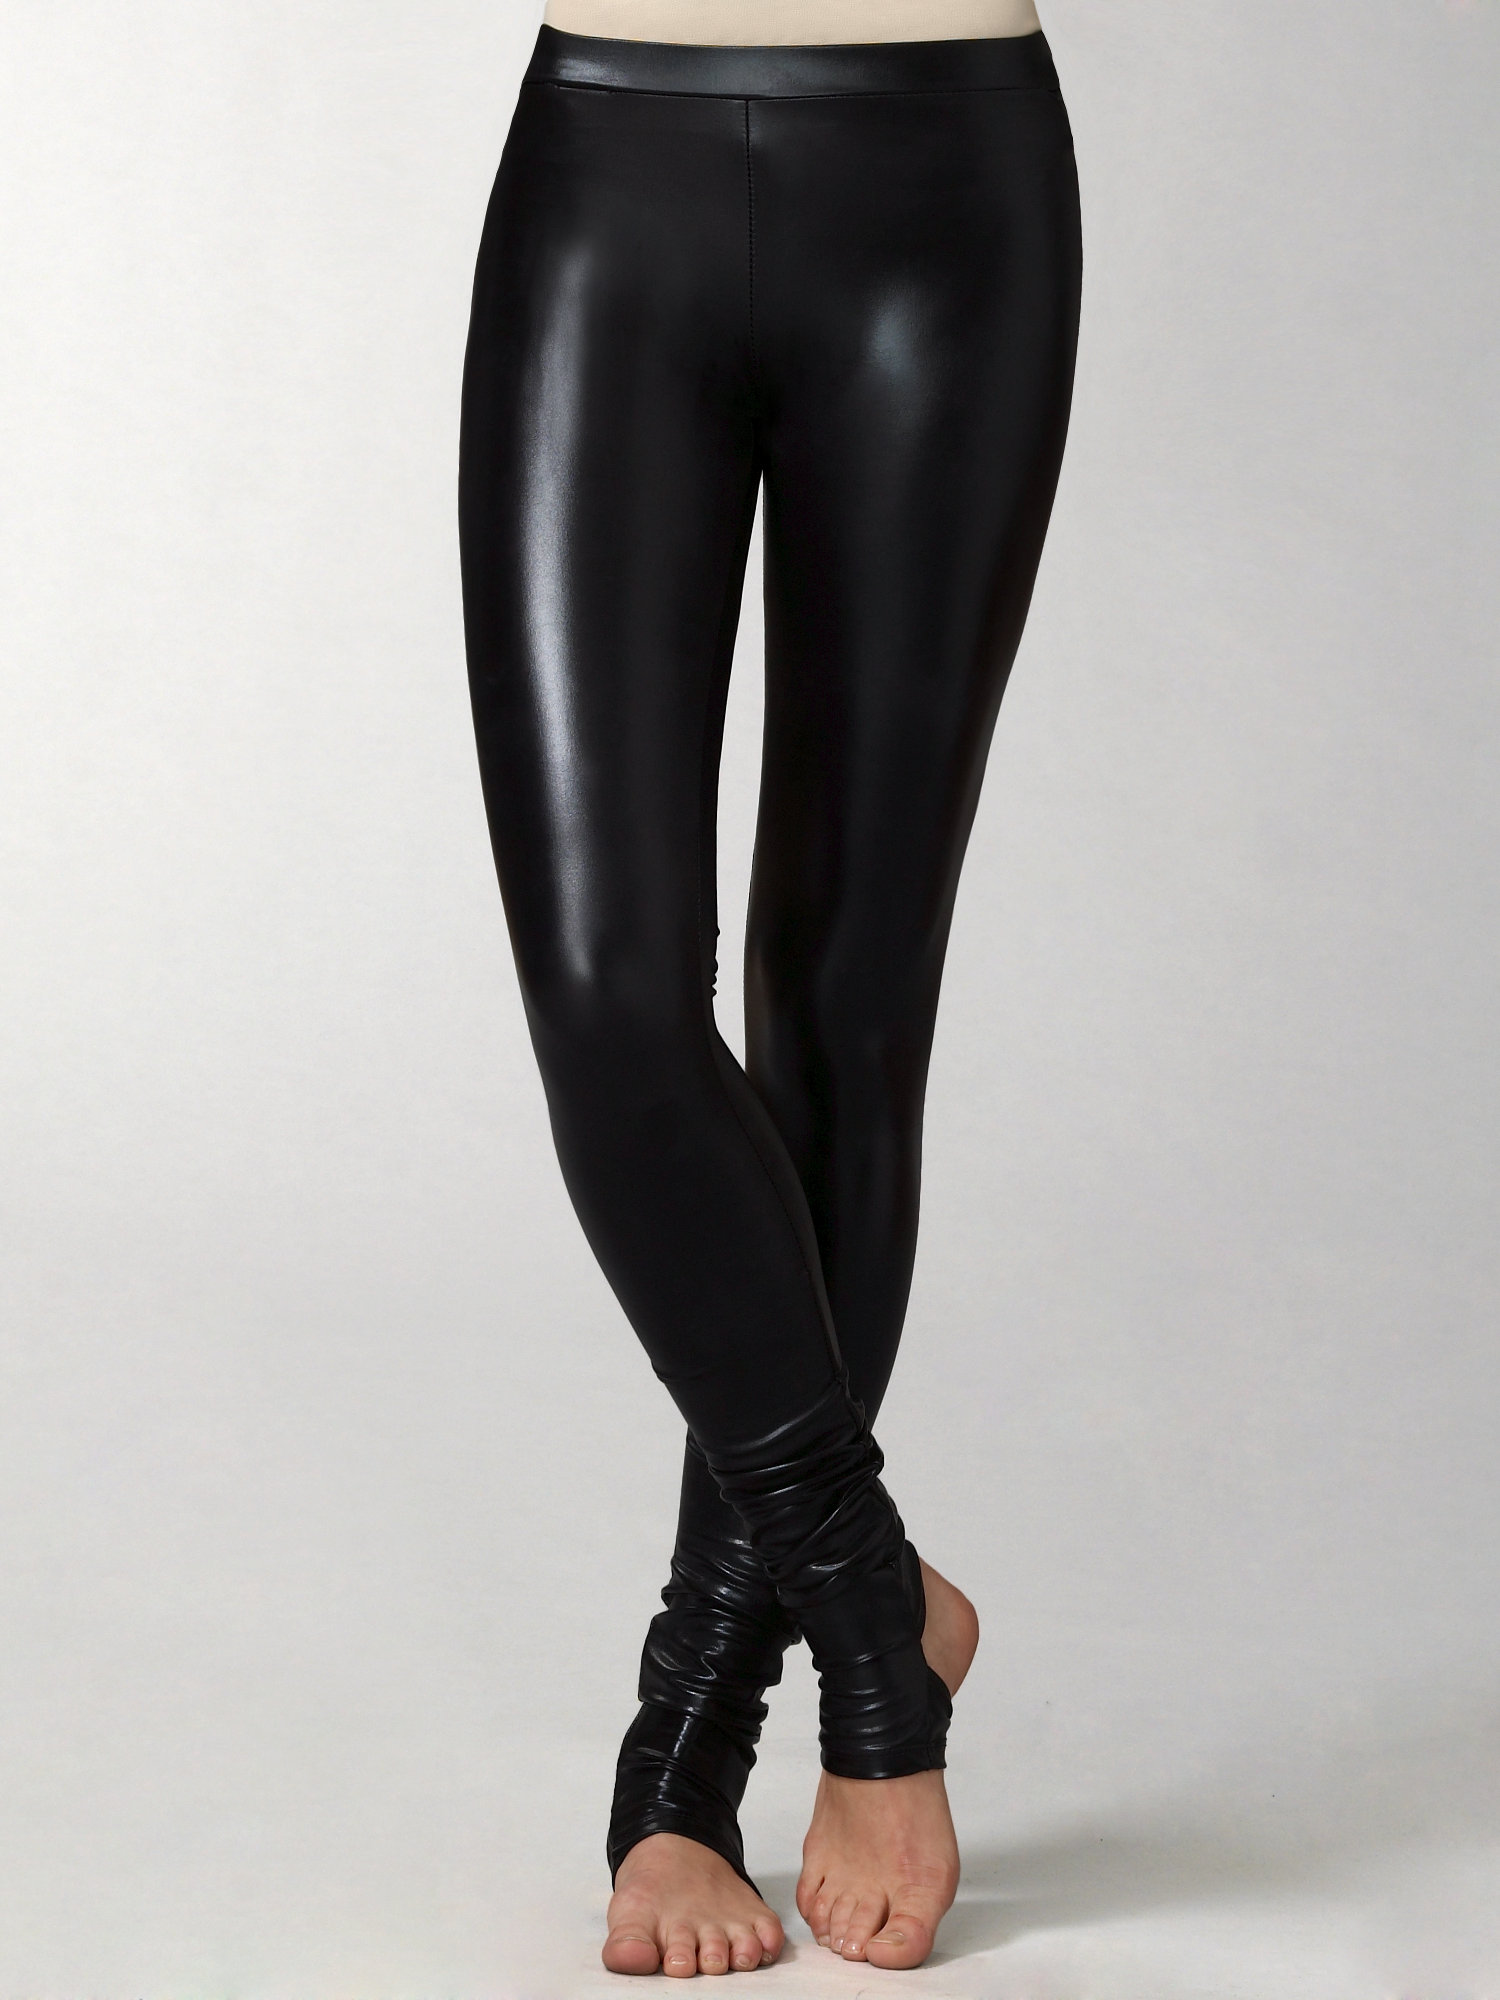 Kova & t Oxy Latex Leggings in Black